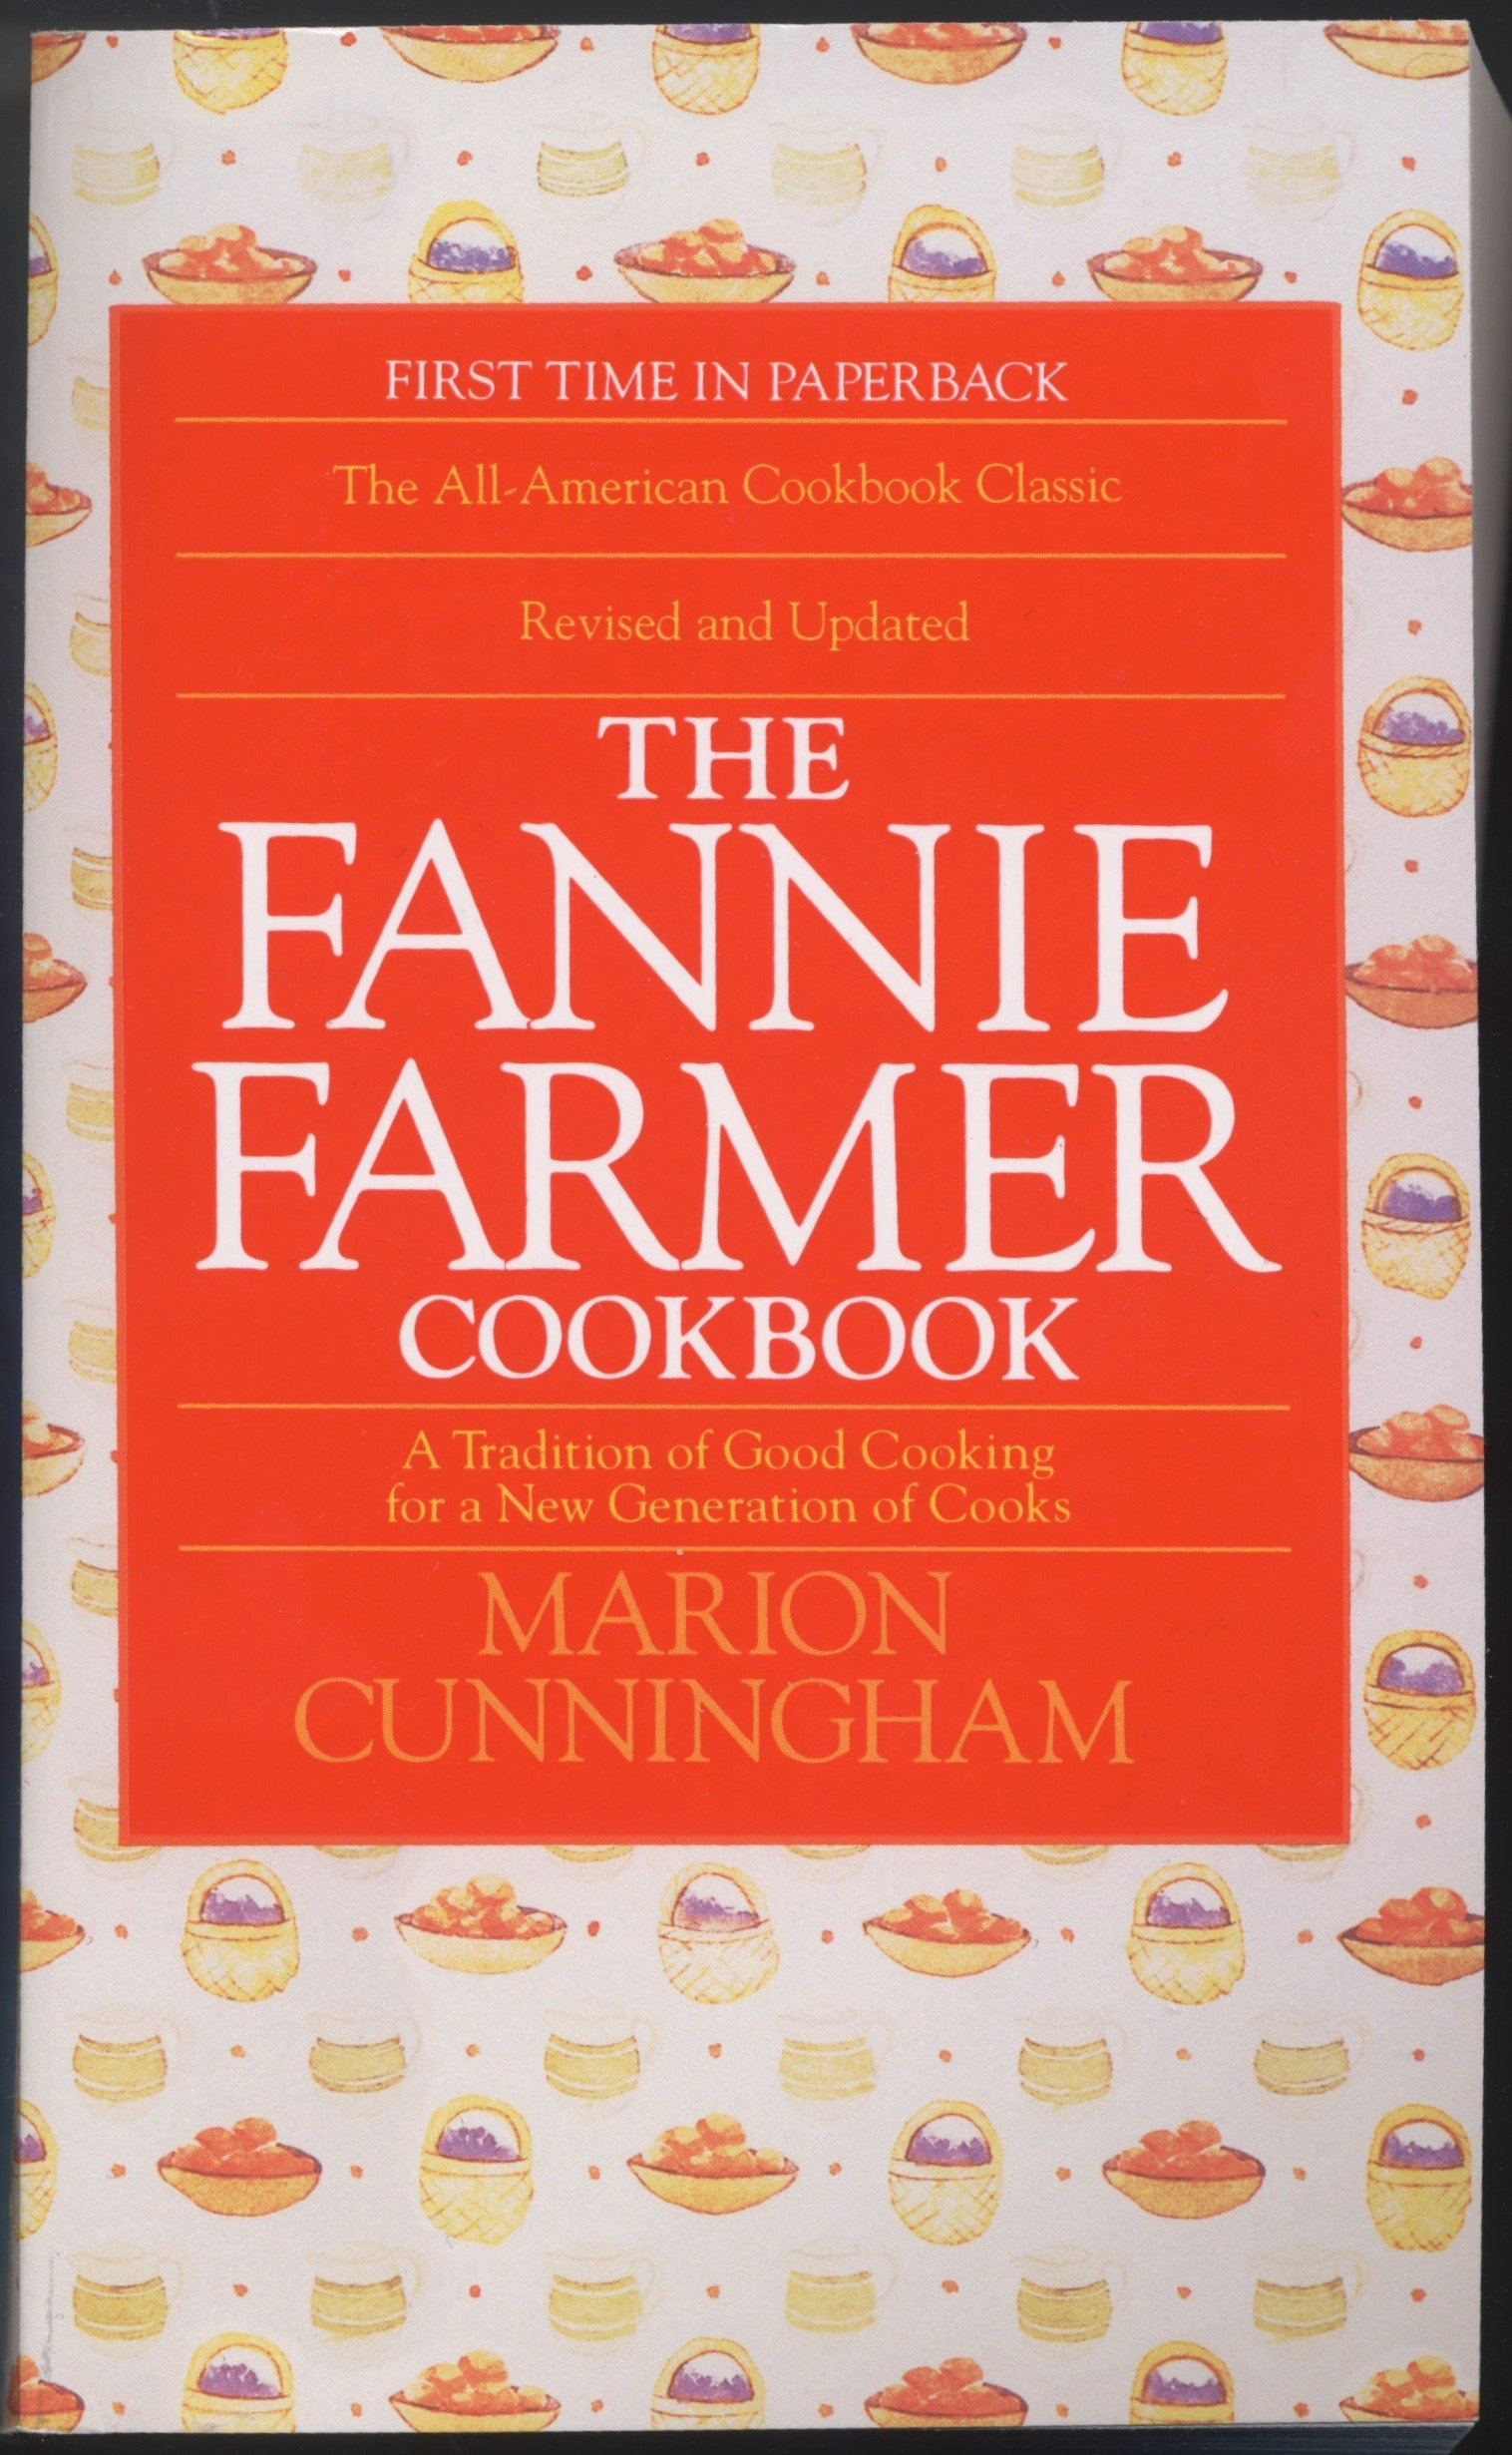 The Fannie Farmer Cookbook: A Tradition of Good Cooking for a New  Generation of Cooks: Marion Cunningham, Lauren Jarrett: 9780553568813:  Amazon.com: Books